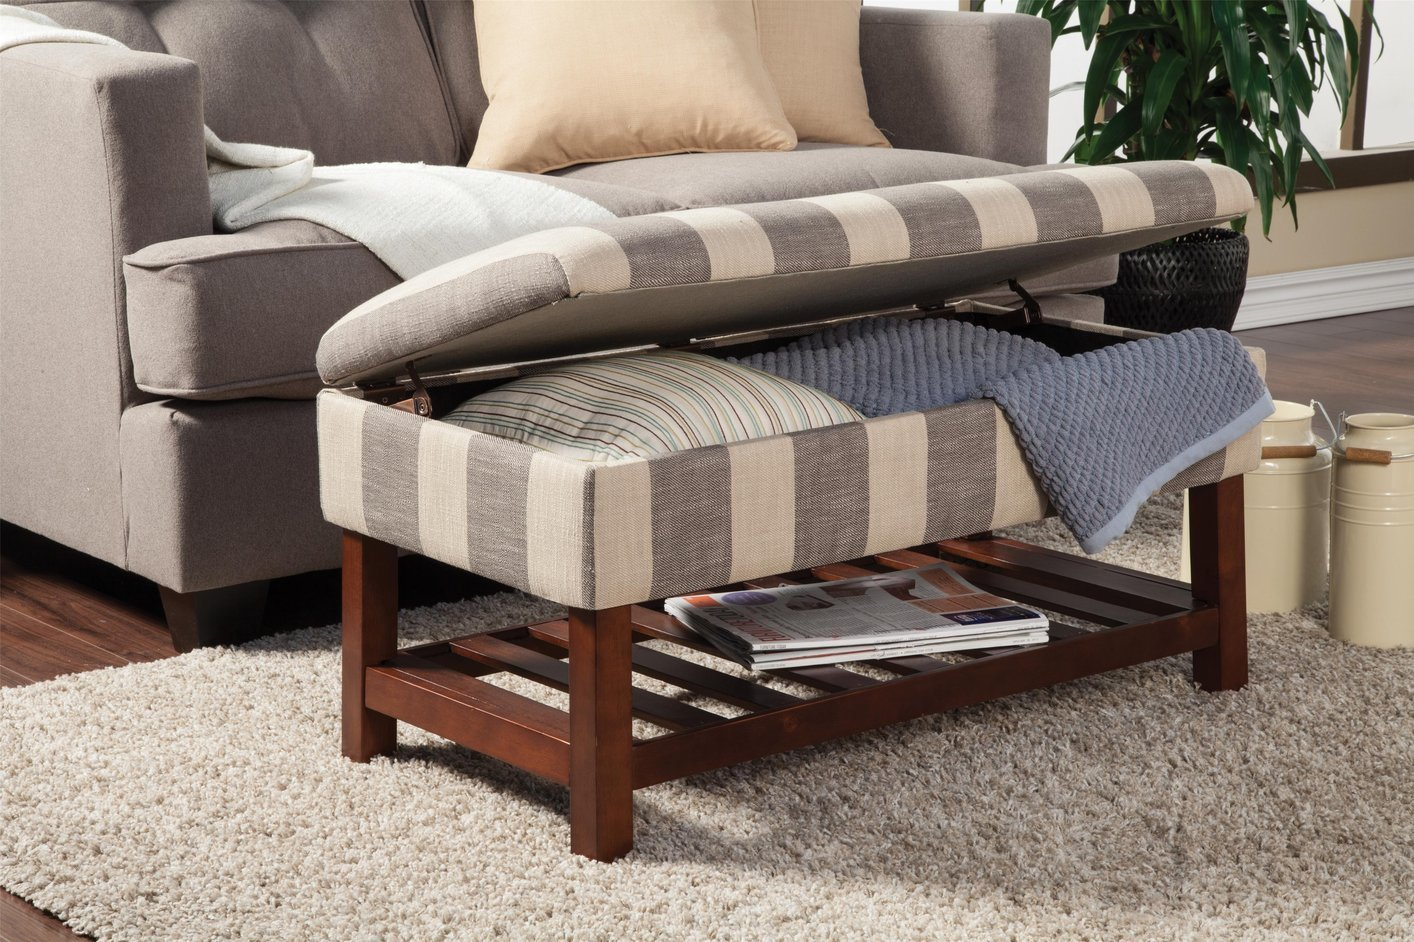 coaster  grey fabric storage bench  stealasofa furniture  - grey fabric storage bench grey fabric storage bench